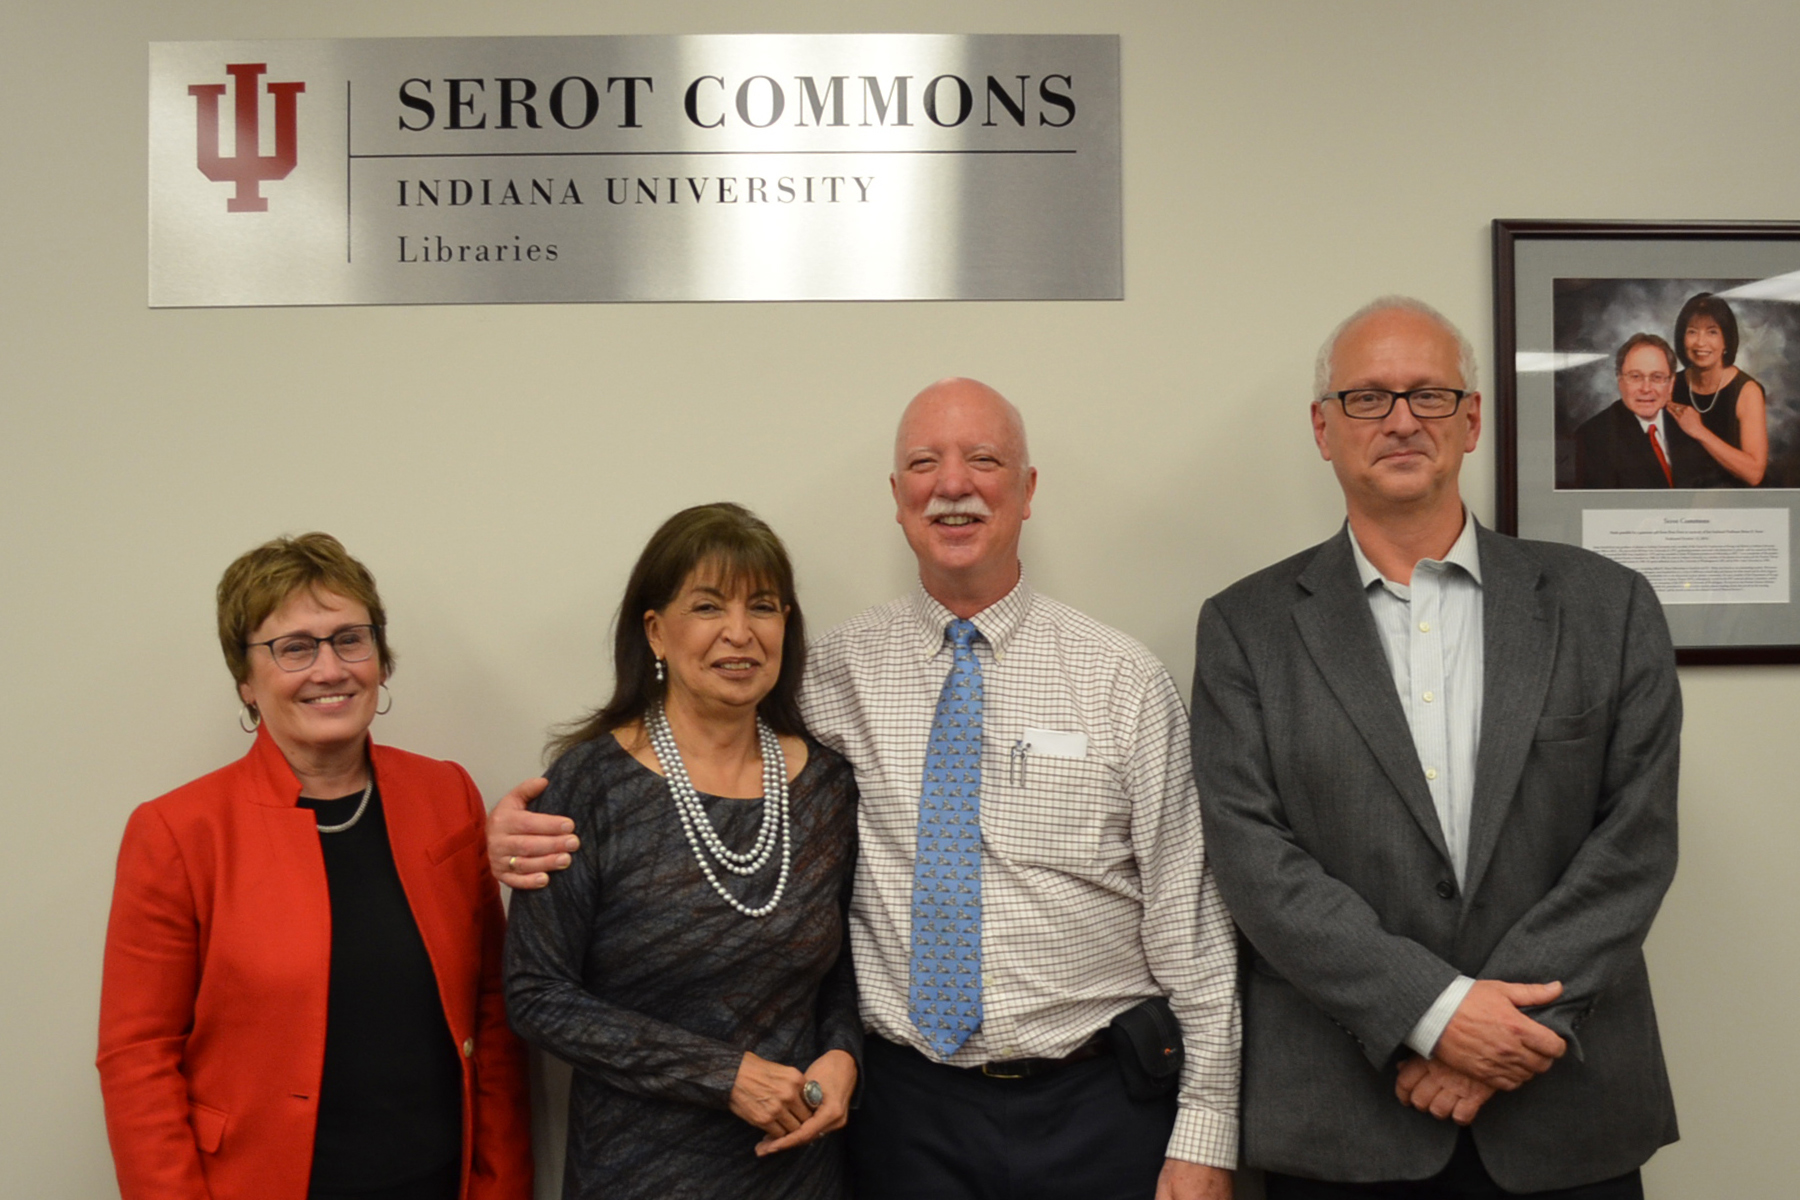 Serot Commons Dedication Speakers